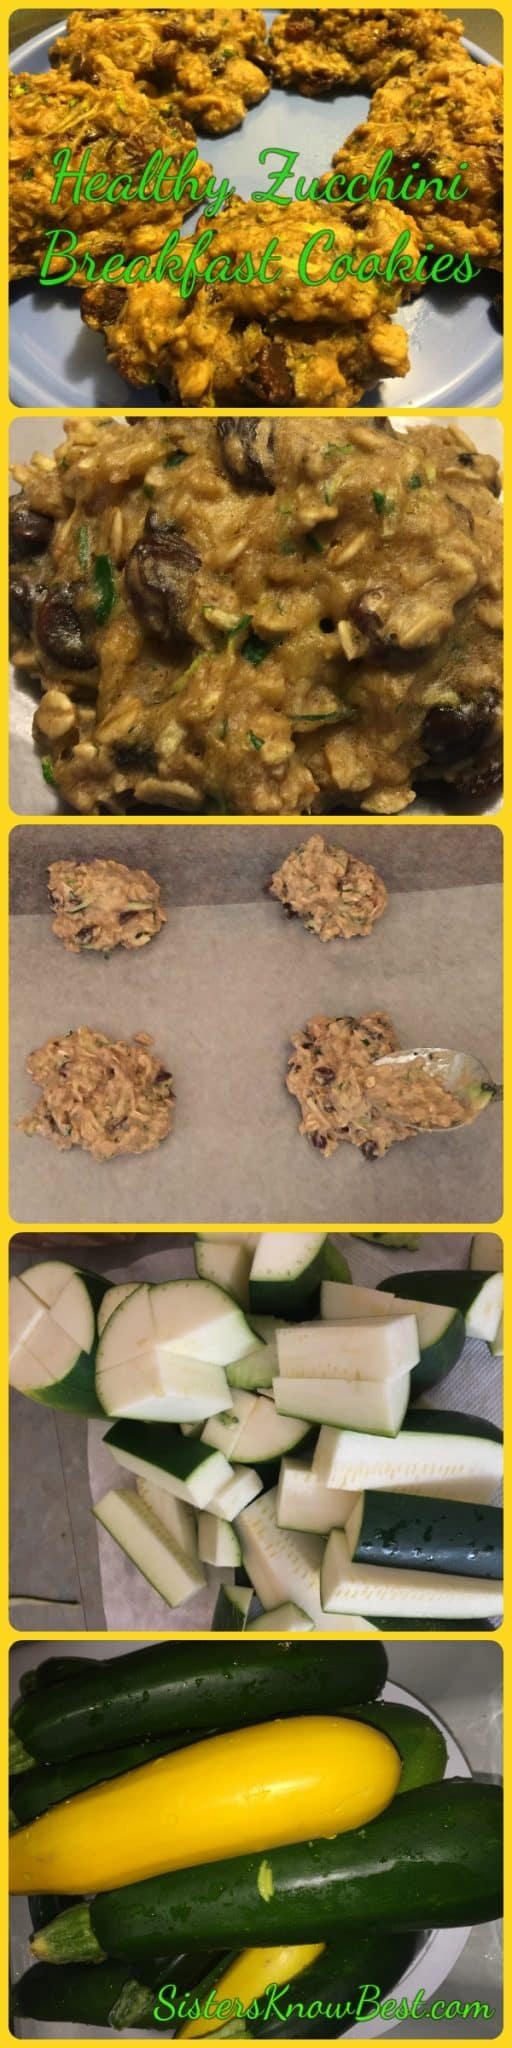 Healthy Zucchini Cookie Recipe from Sisters Know Best